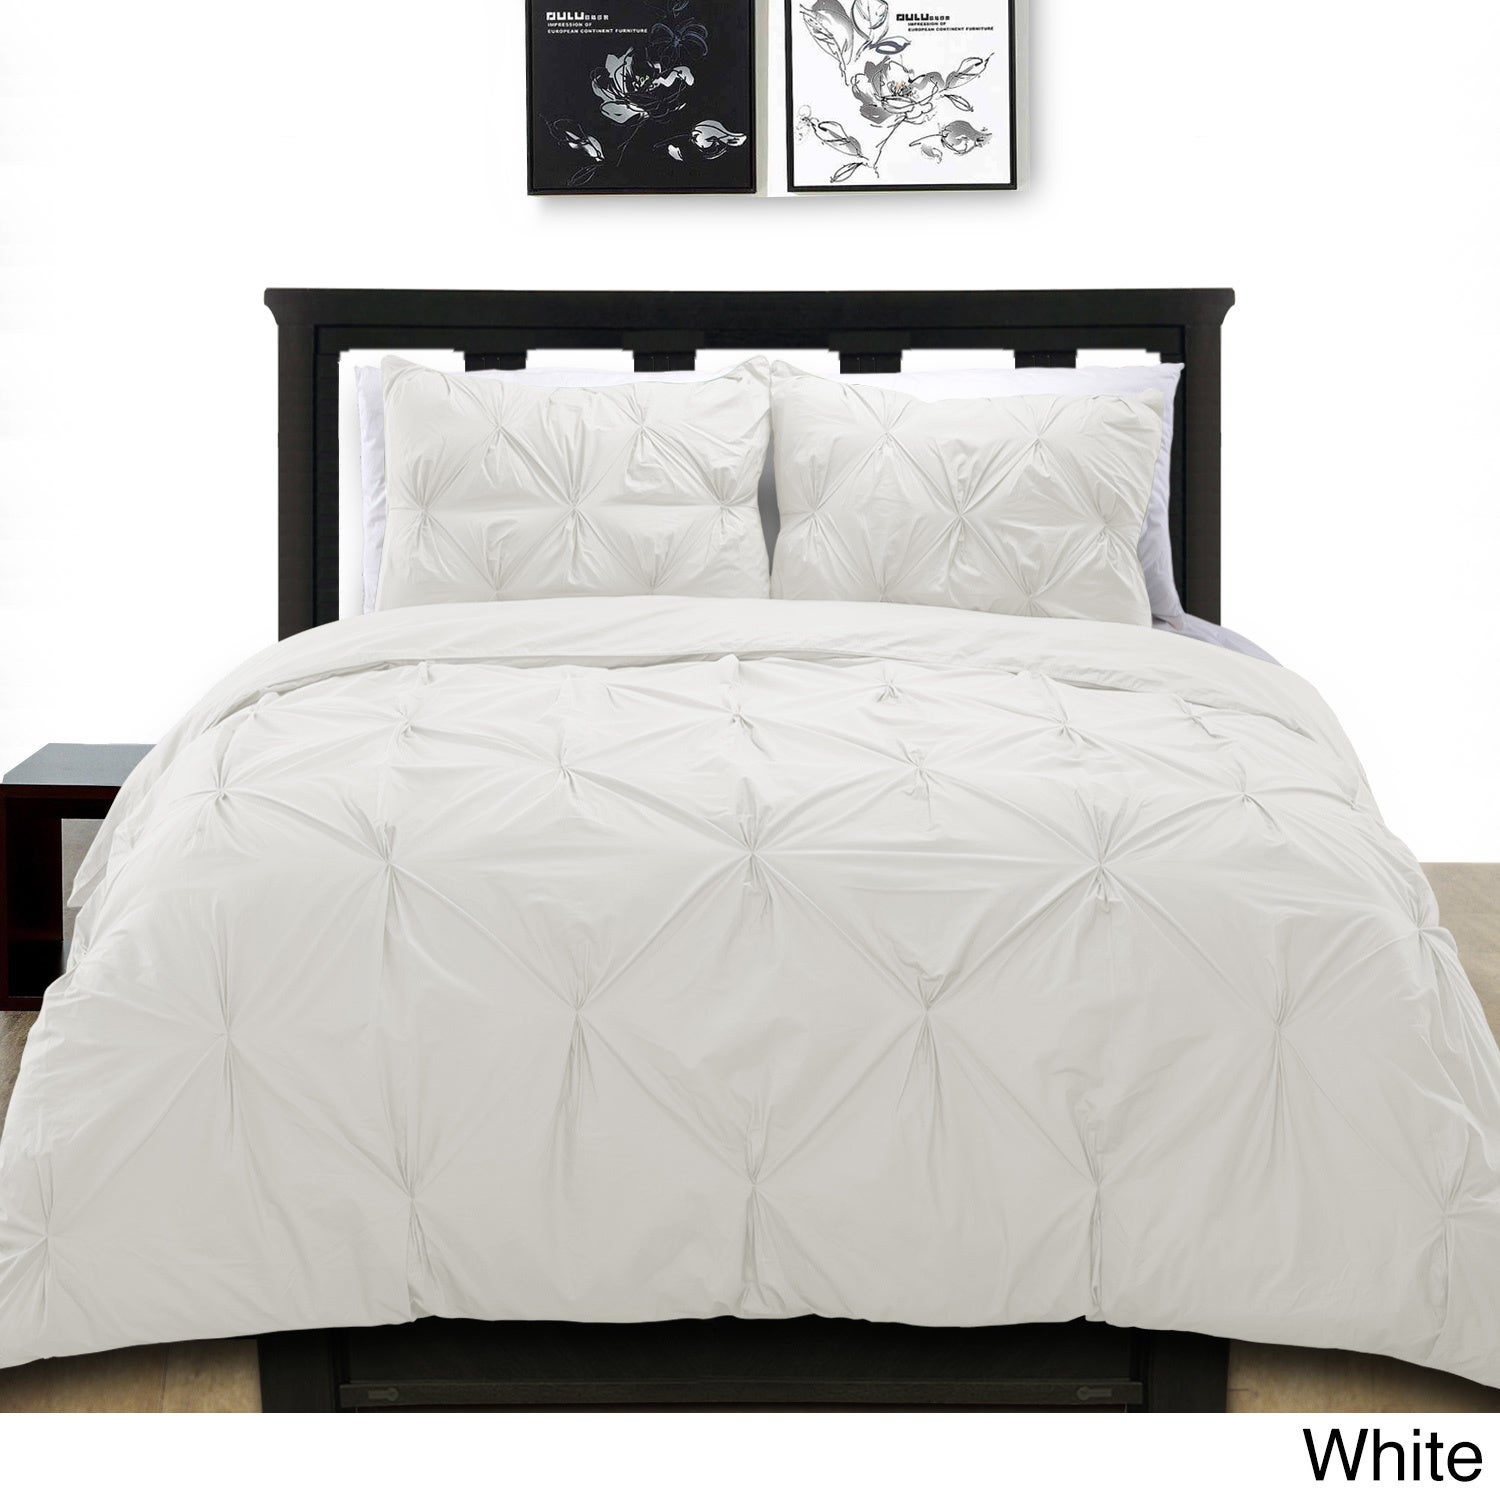 Cotton Basics Pintuck Duvet Cover Mini Set Free Shipping Today 12674540